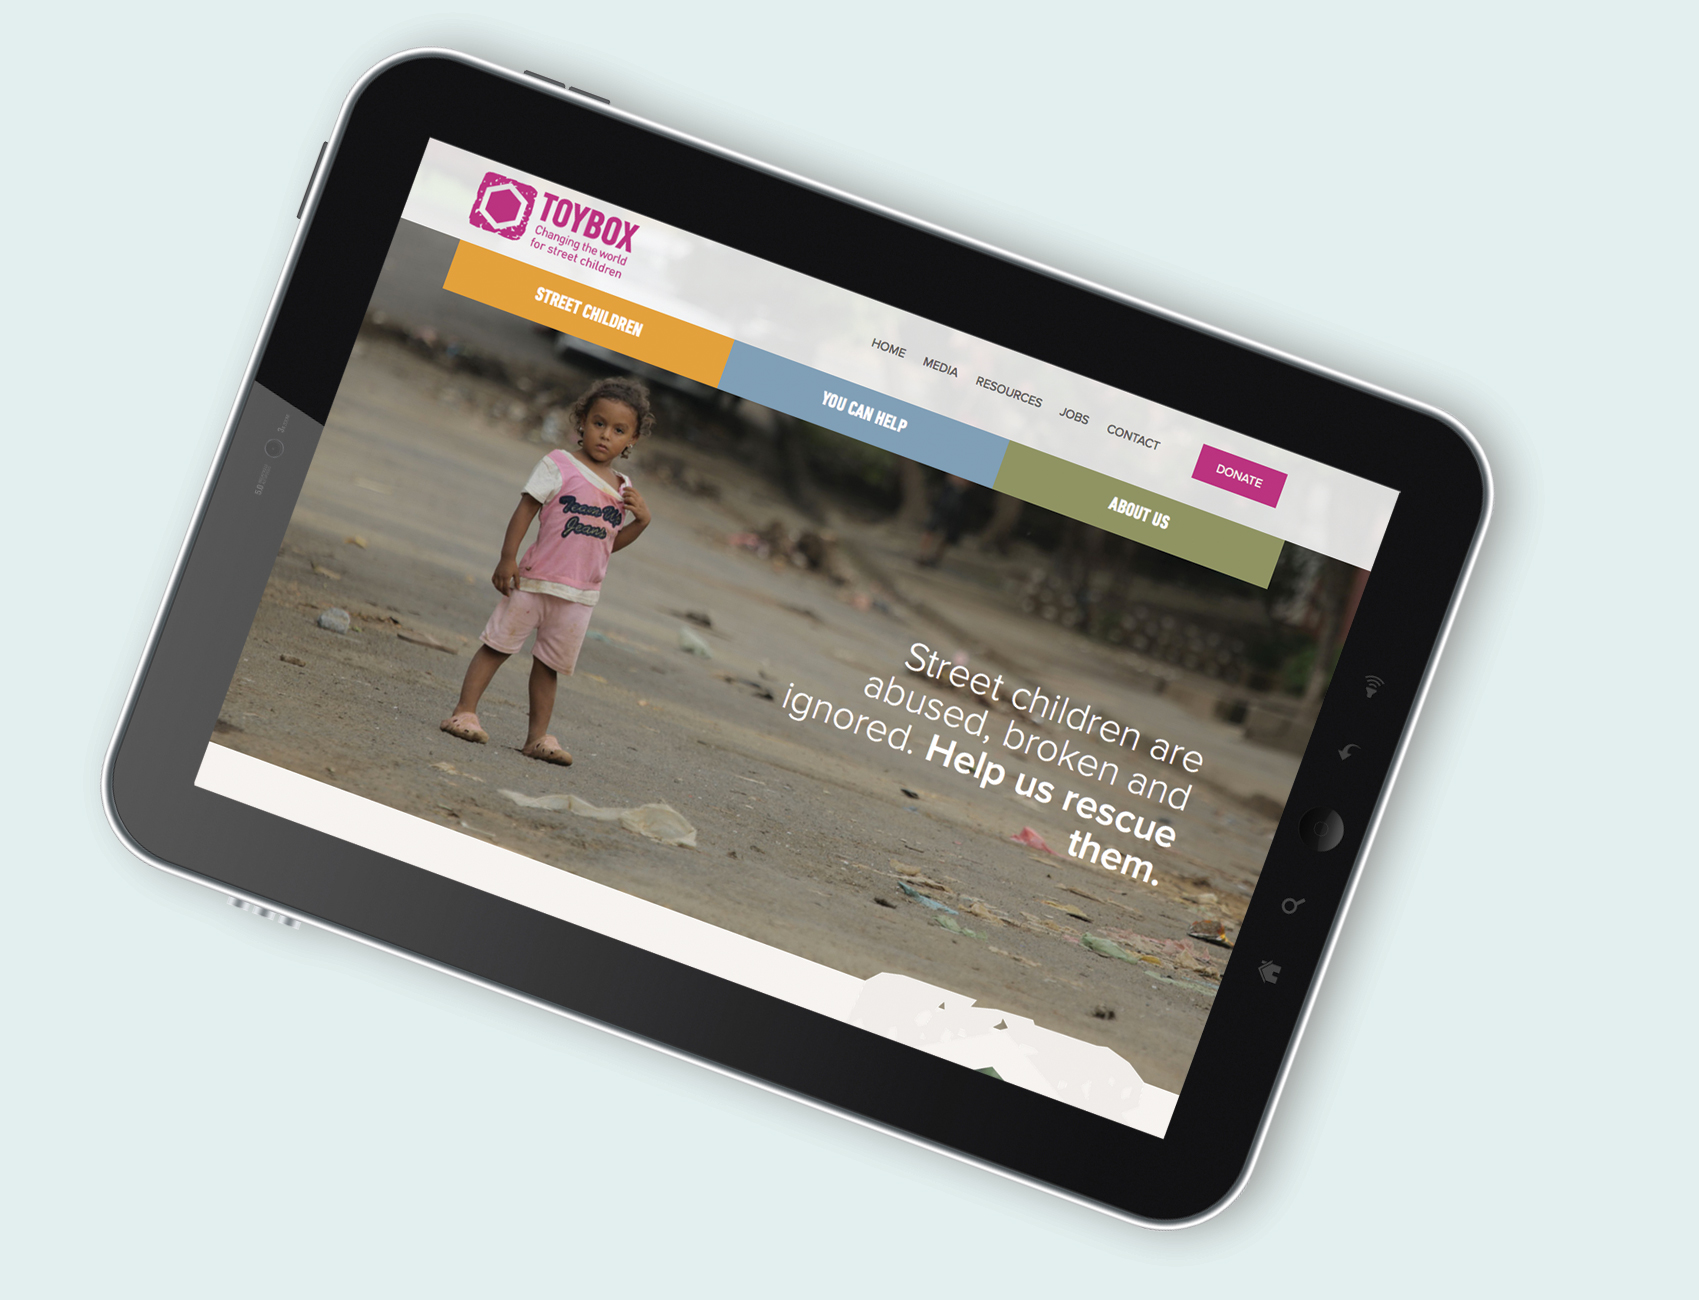 tablet screen showing Toybox website homepage